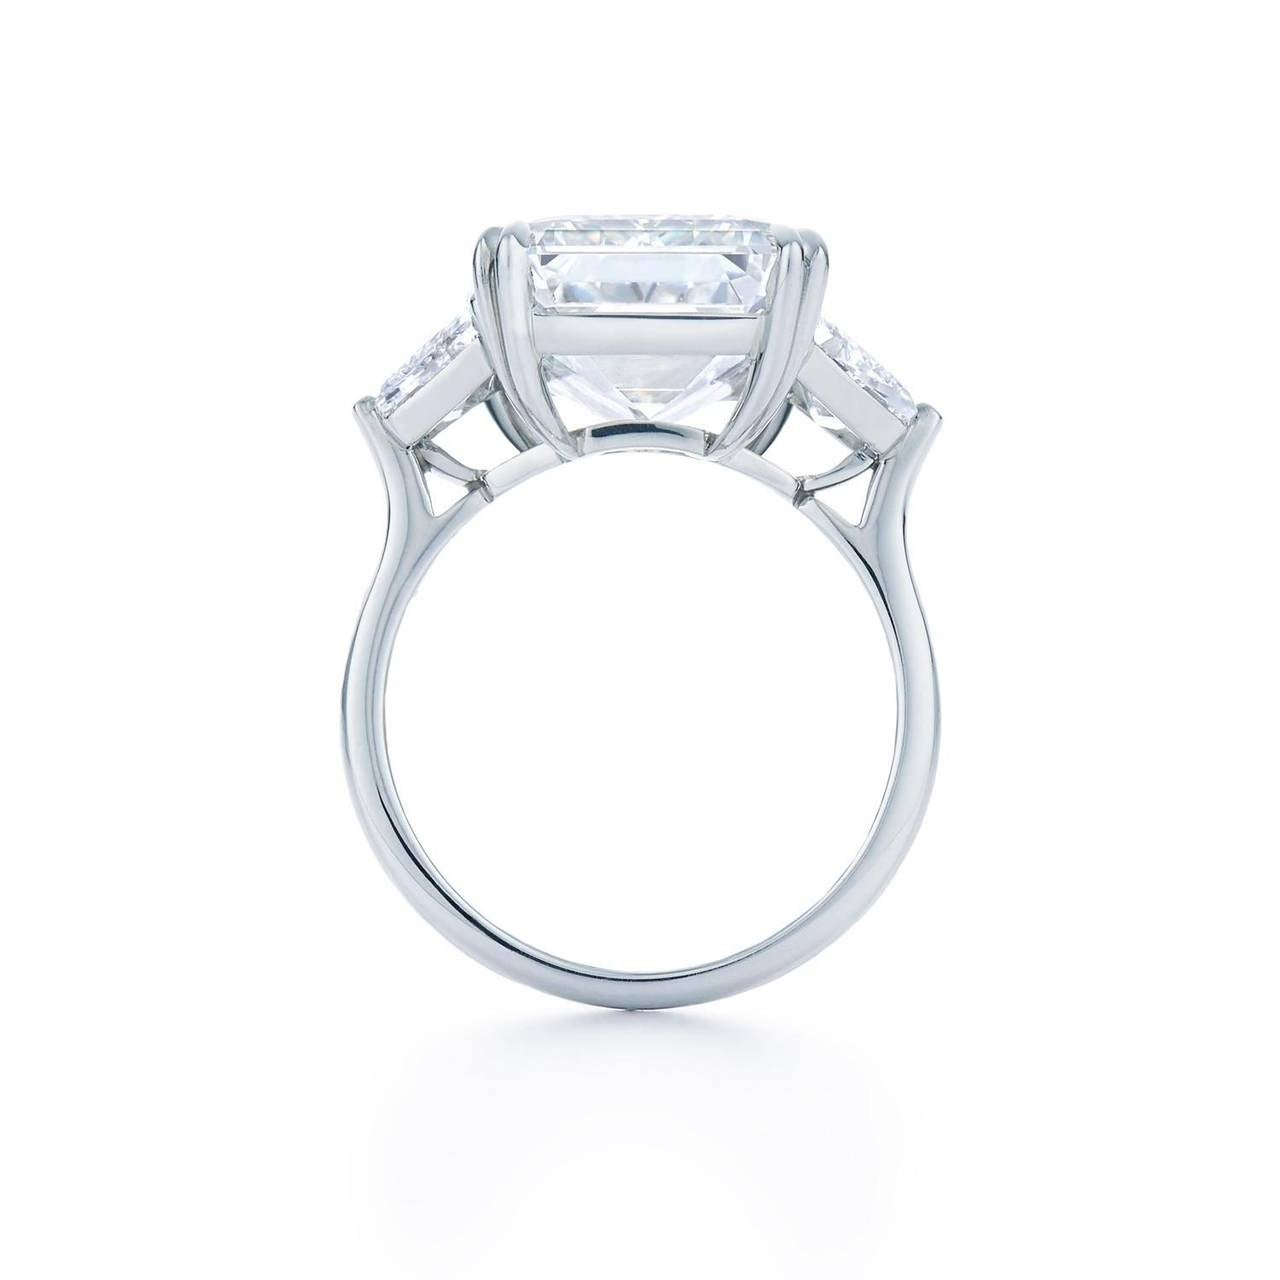 A beautiful 8.01ct, I color, VVS2 clarity Emerald Cut Diamond ring. This ring is set in platinum with two stunning trapezoid side stones, that weigh .75cts, and are HI in color and VS1 in clarity.